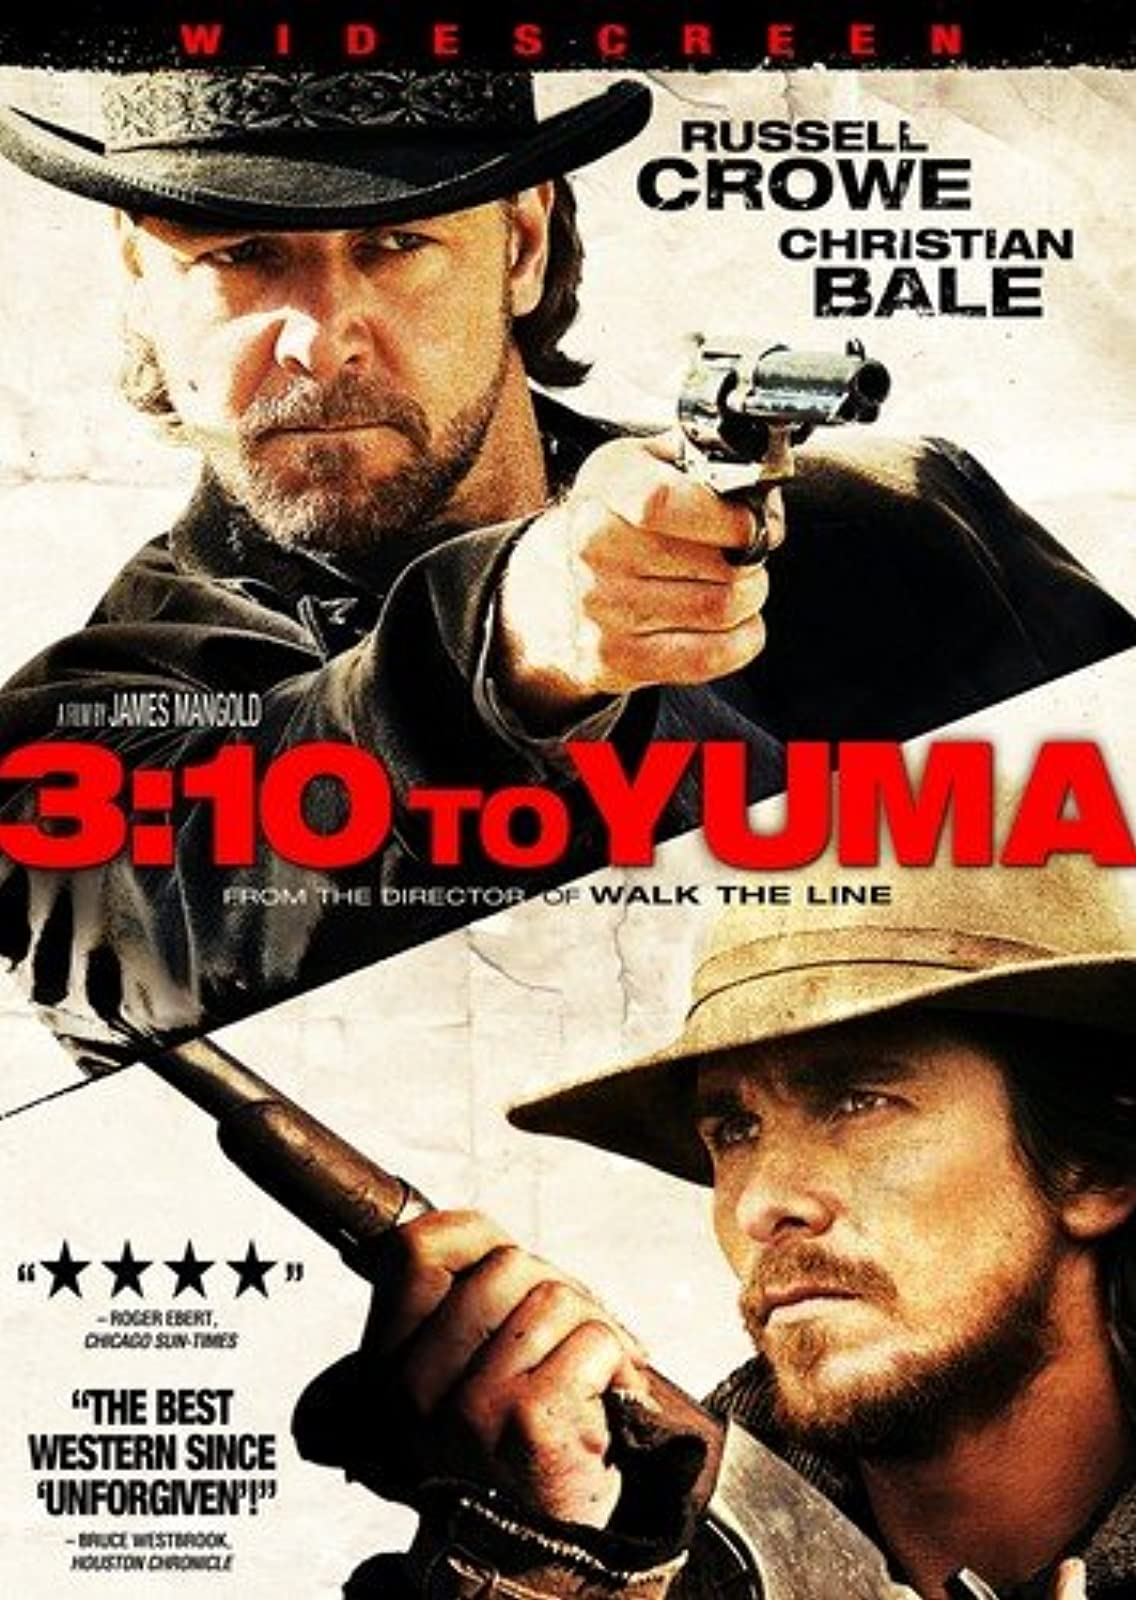 3:10 To Yuma Widescreen Edition On DVD With Russell Crowe Westerns